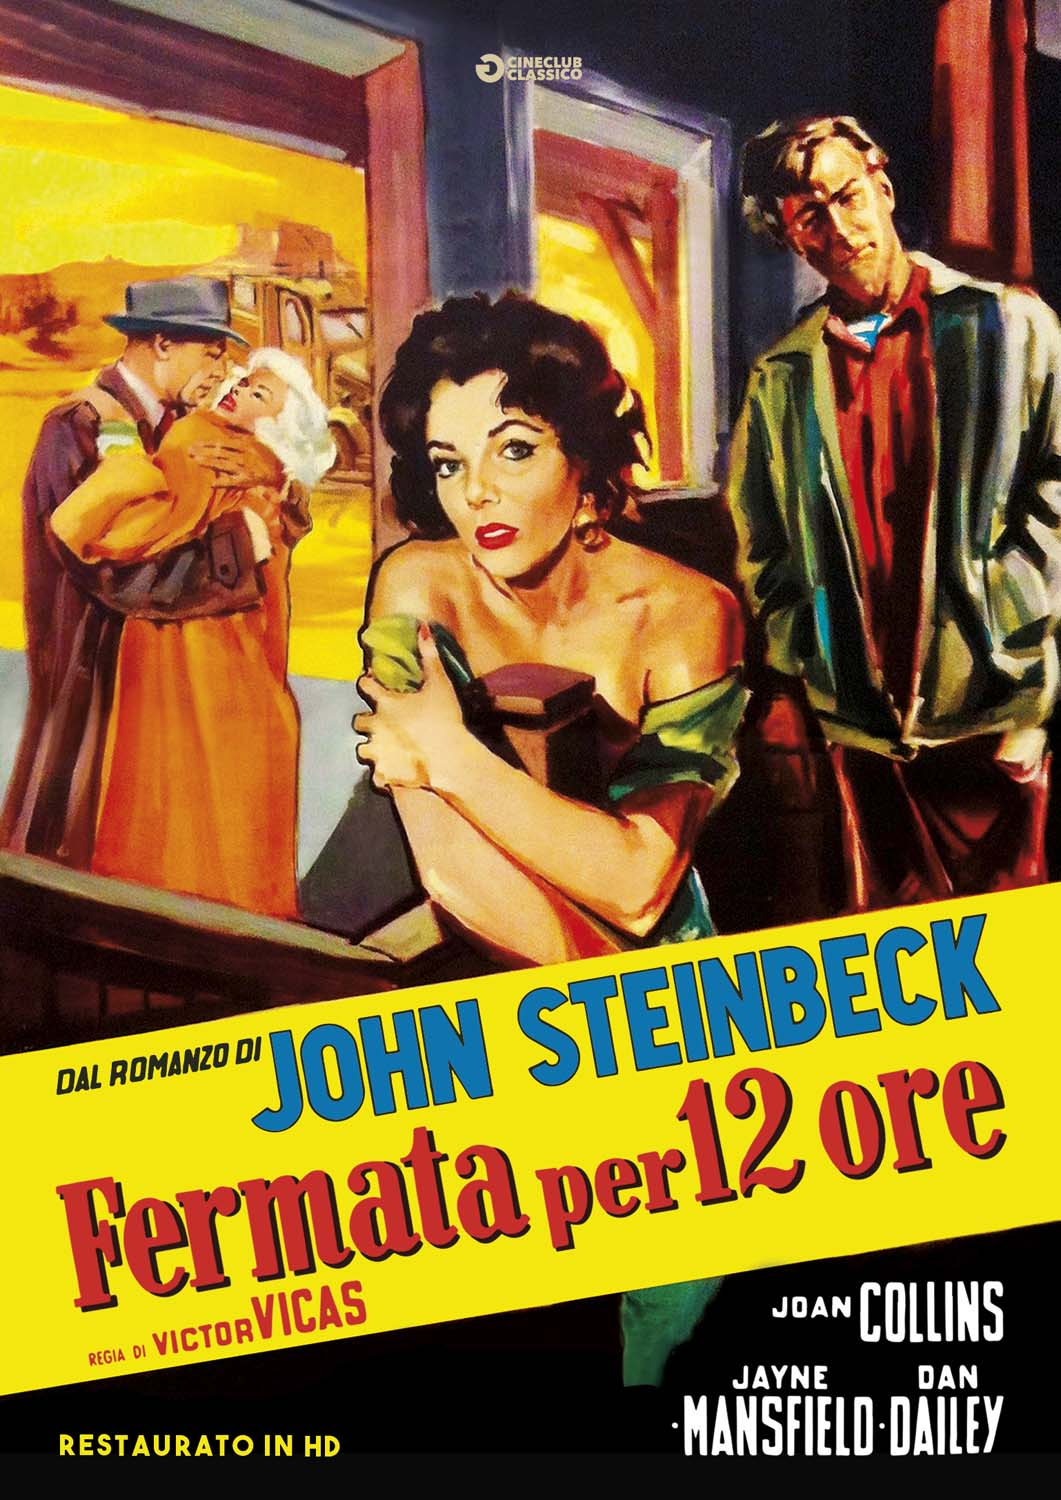 FERMATA PER 12 ORE (RESTAURATO IN HD) (DVD)